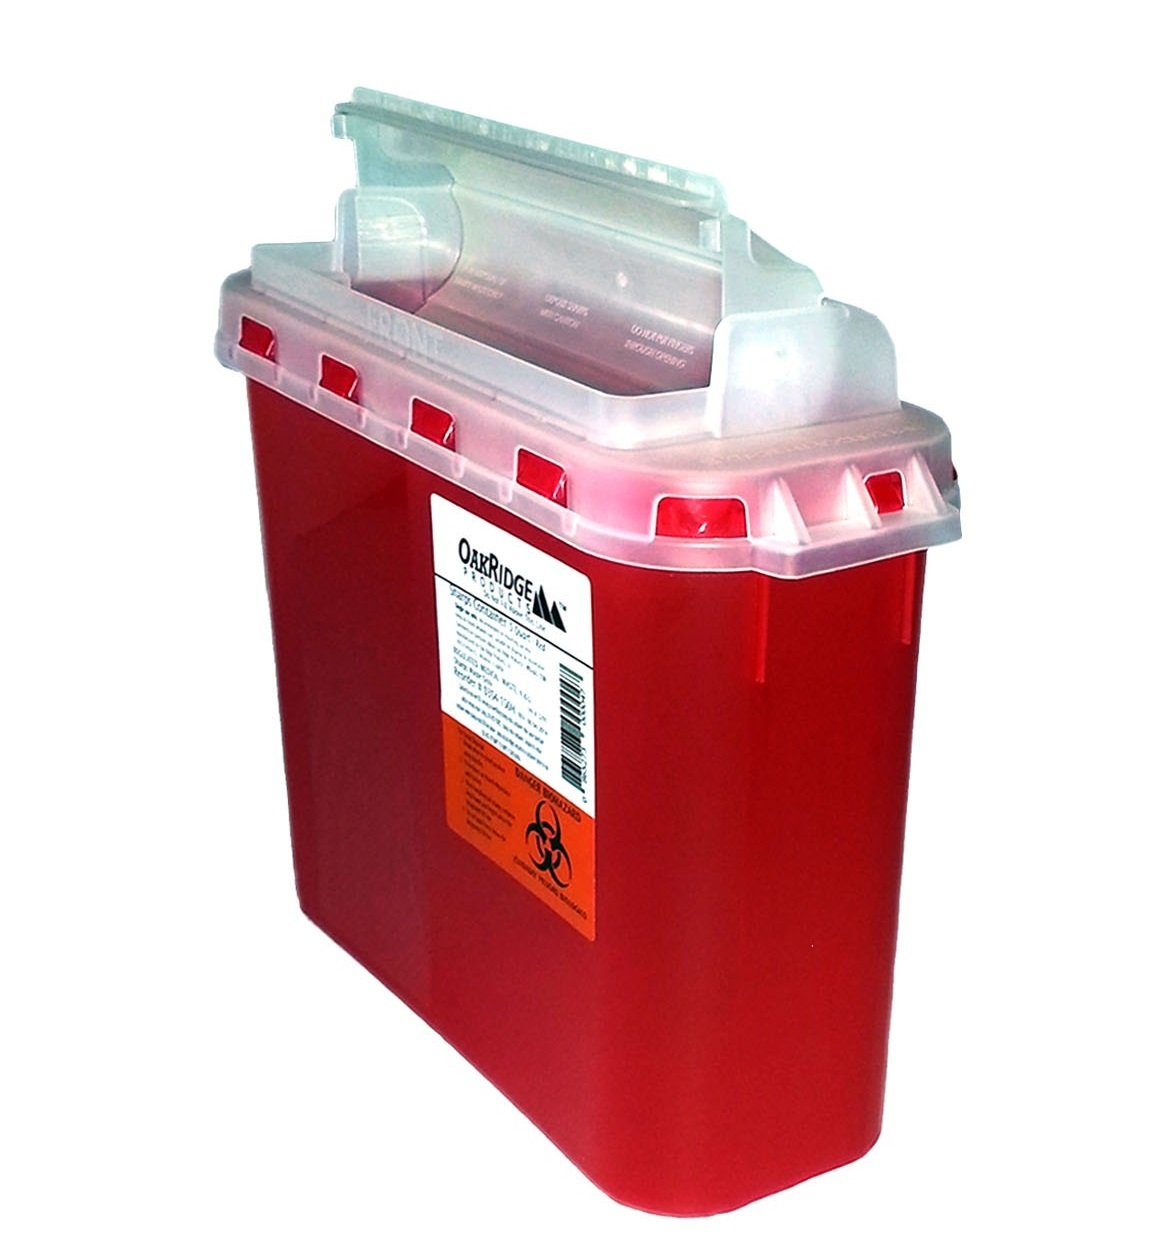 BD 5.4 Qt Sharps Disposal Container | Oakridge Products | Touchfree Rotating Lid by OakRidge Products